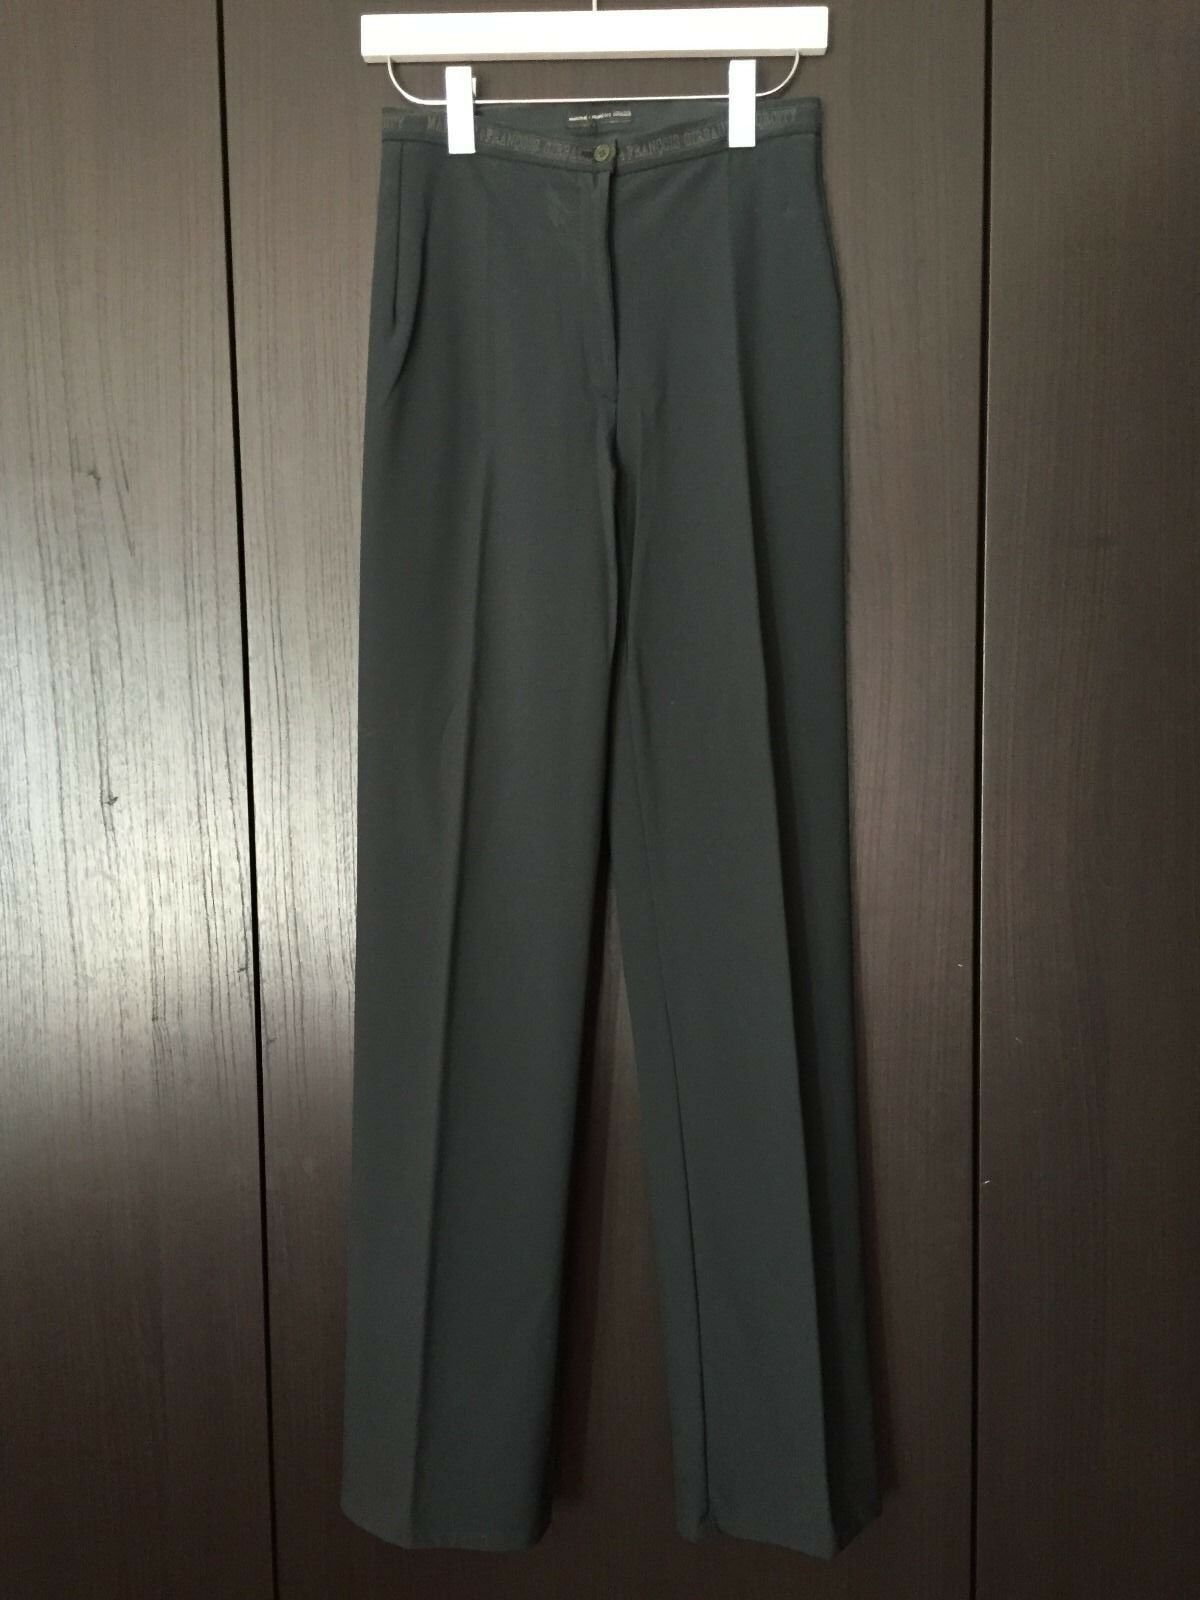 VINTAGE Marithe Francois Girbaud Spqrcity Dark Green Stretch Pants Size USA 27